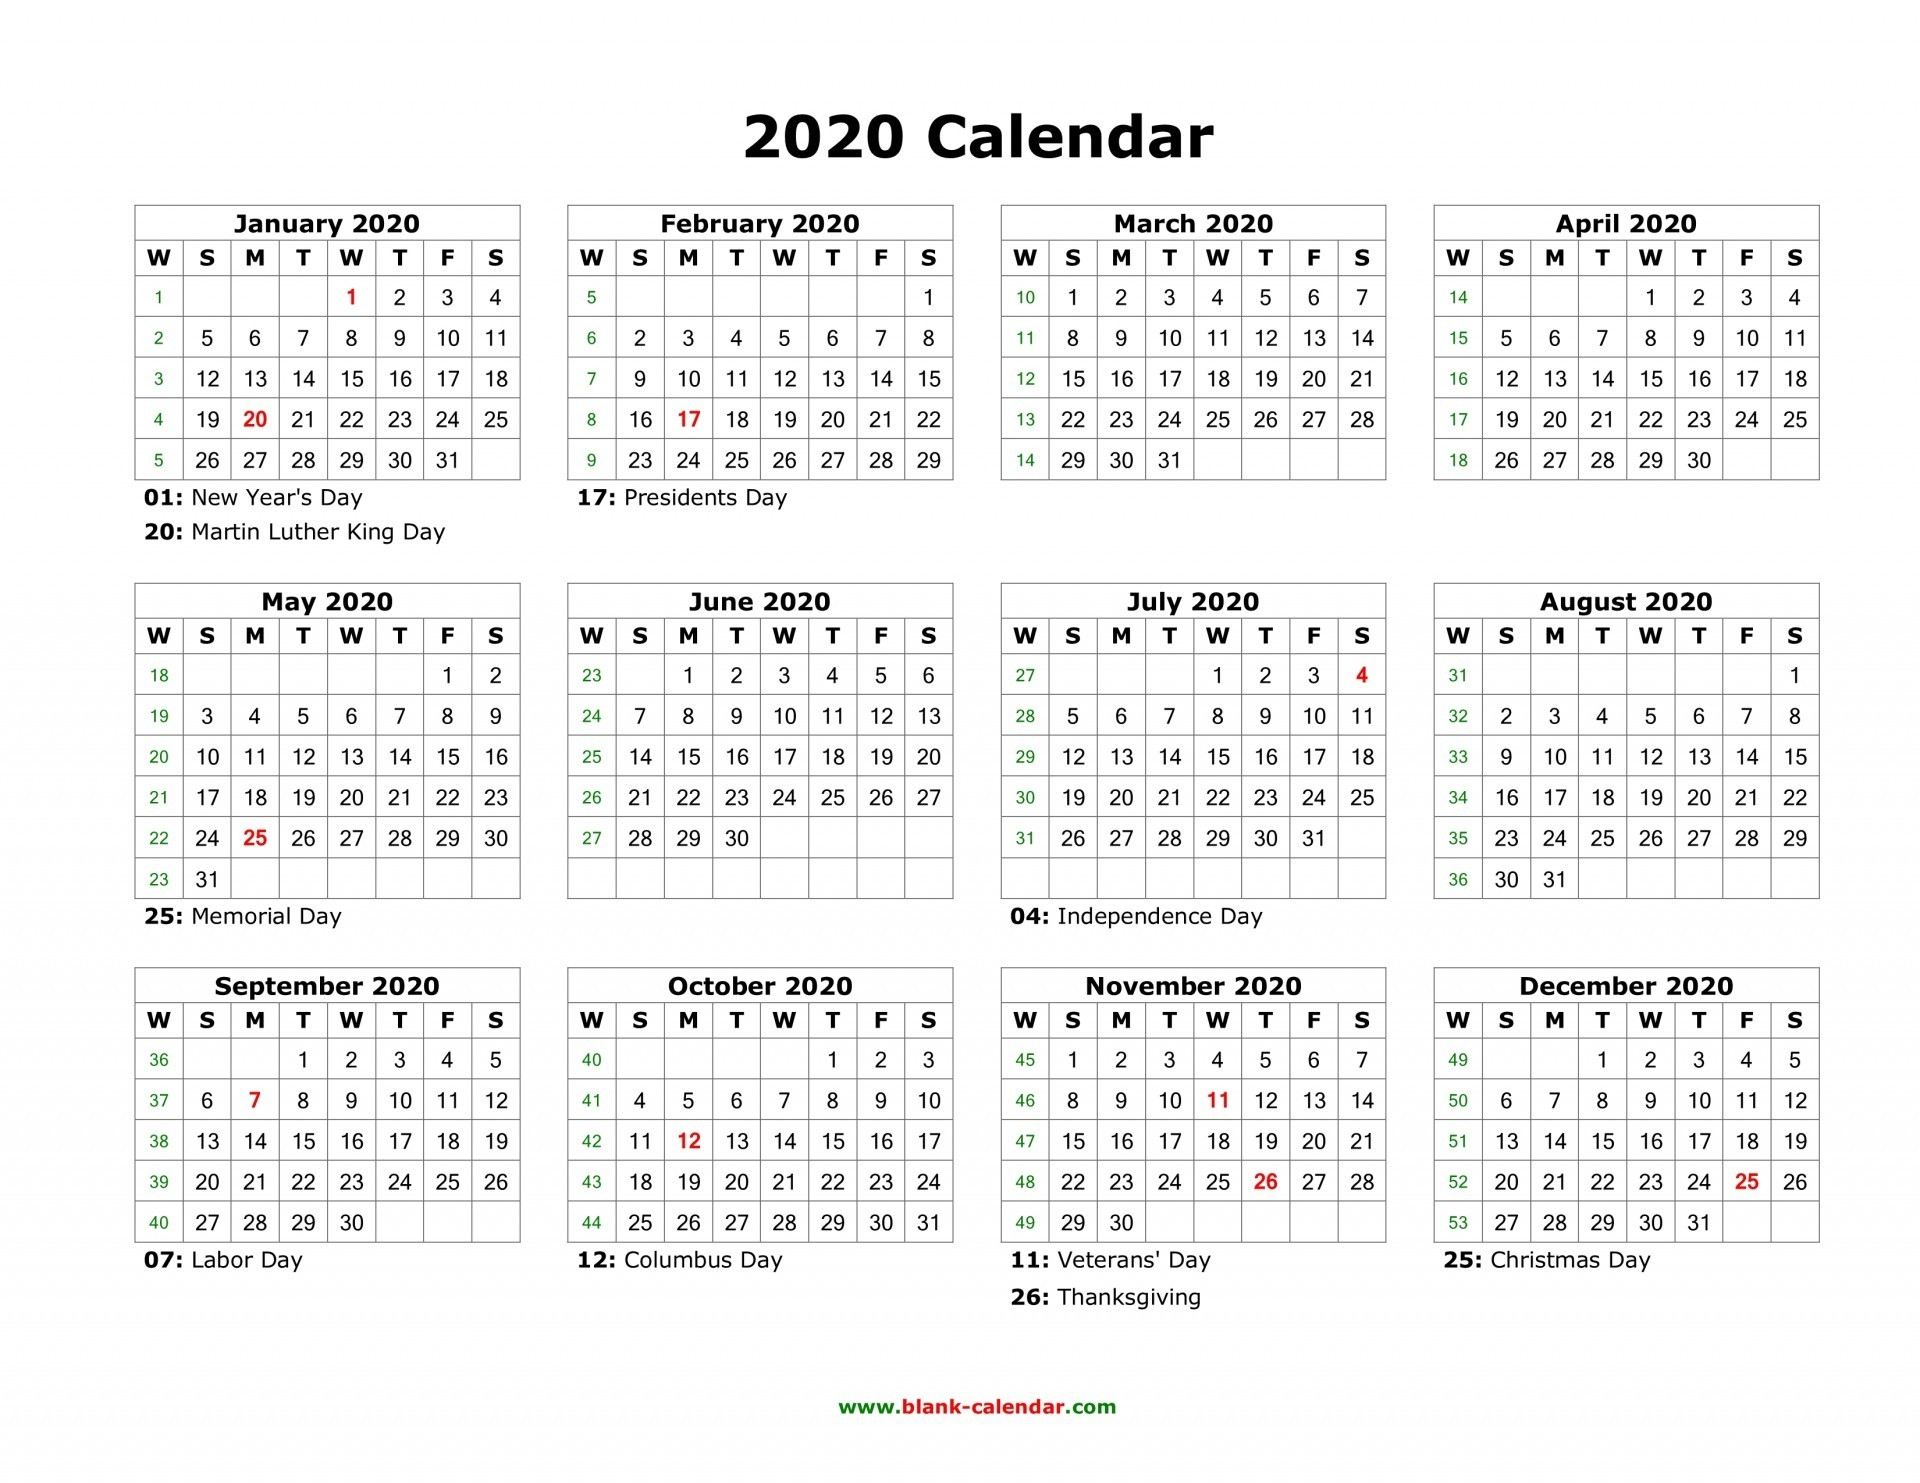 Free Printable 2020 Calendar With Holidays South Africa-Holidays 2020 South Africa